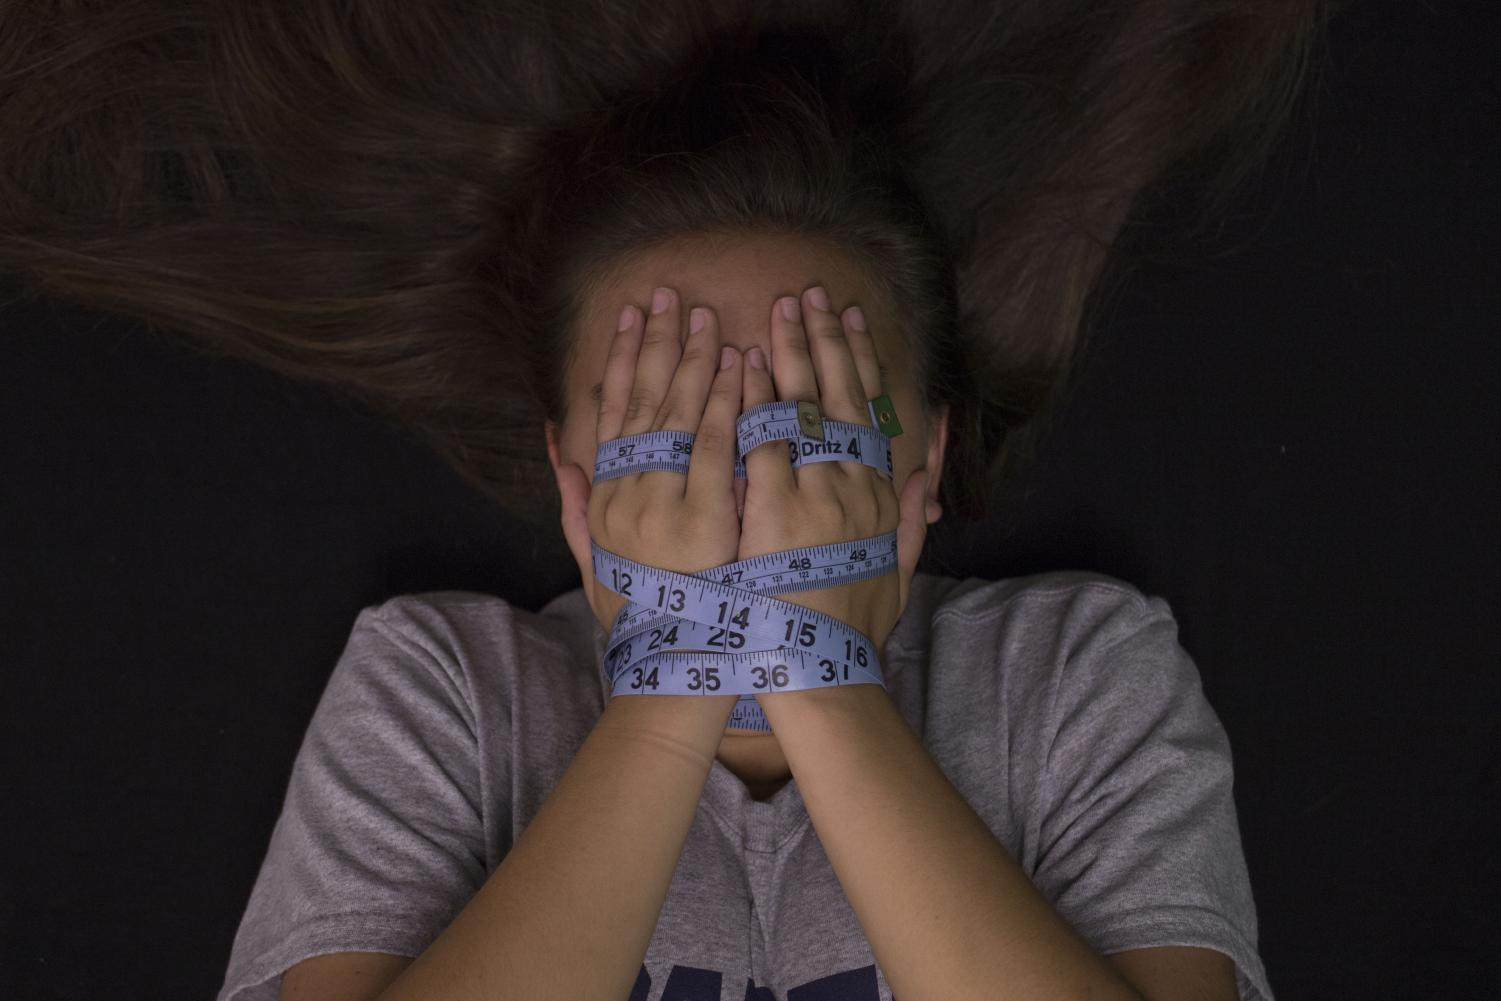 A girl's hands are bound in a tape measure as she covers her face. Eating disorders often make individuals feel trapped within their own bodies.